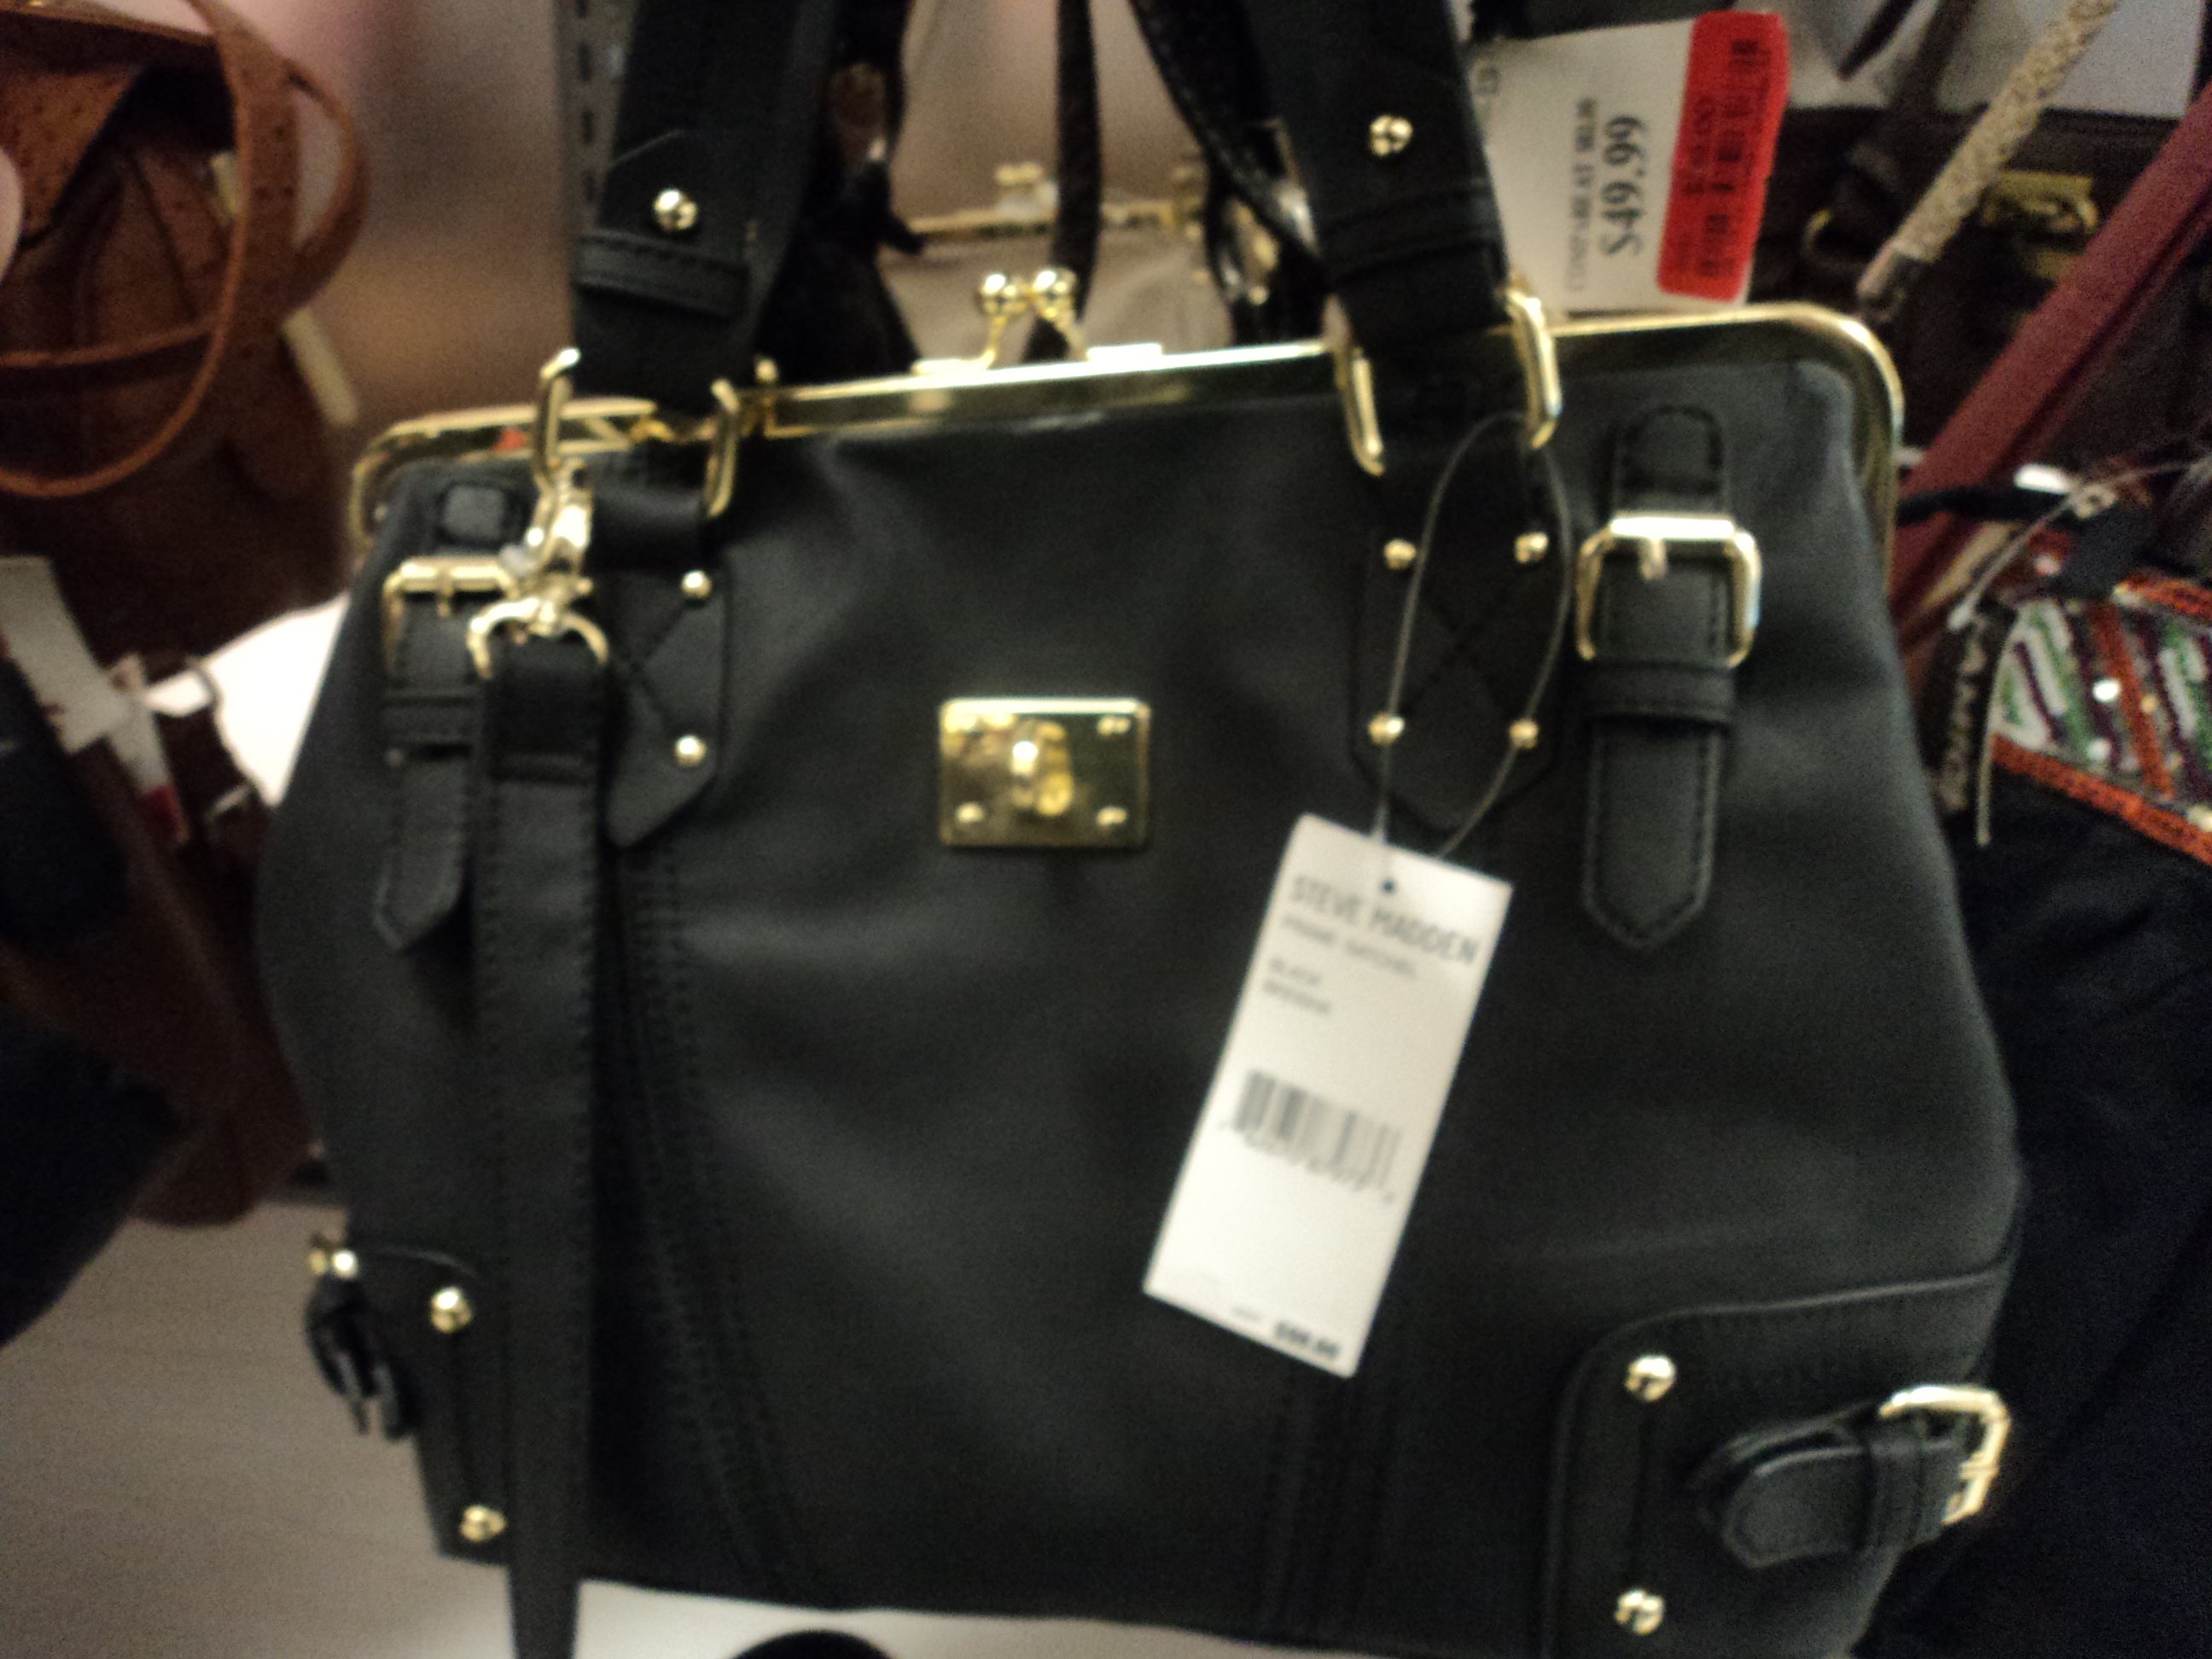 designer purses clearance hfd9  Clearance On Designer Handbags At Tj Maxx Dooney Bourke Share The